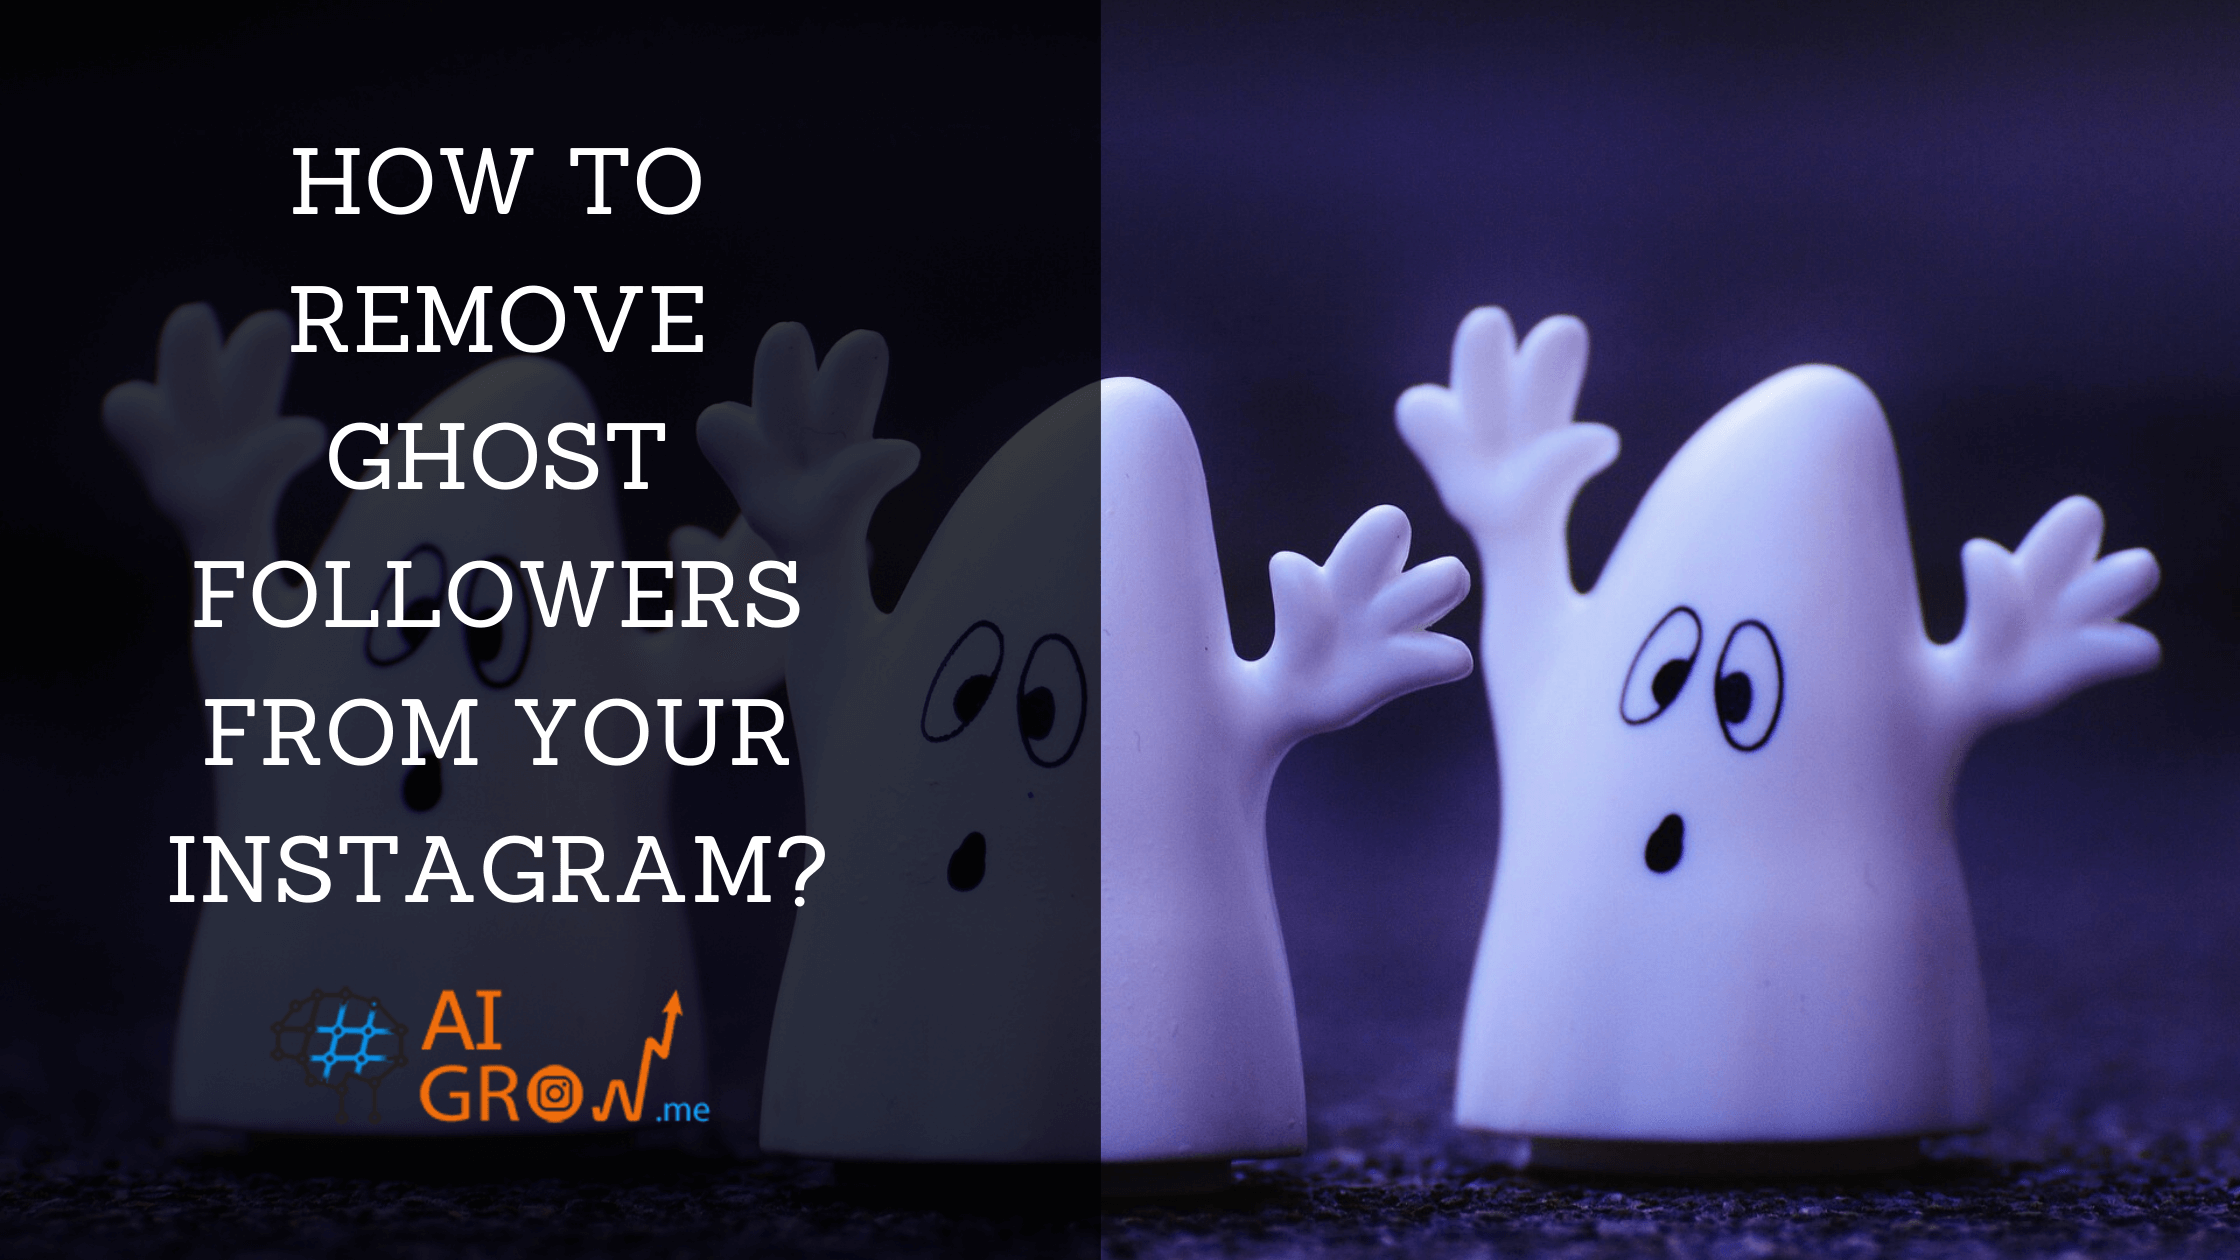 How to remove ghost followers from your Instagram?